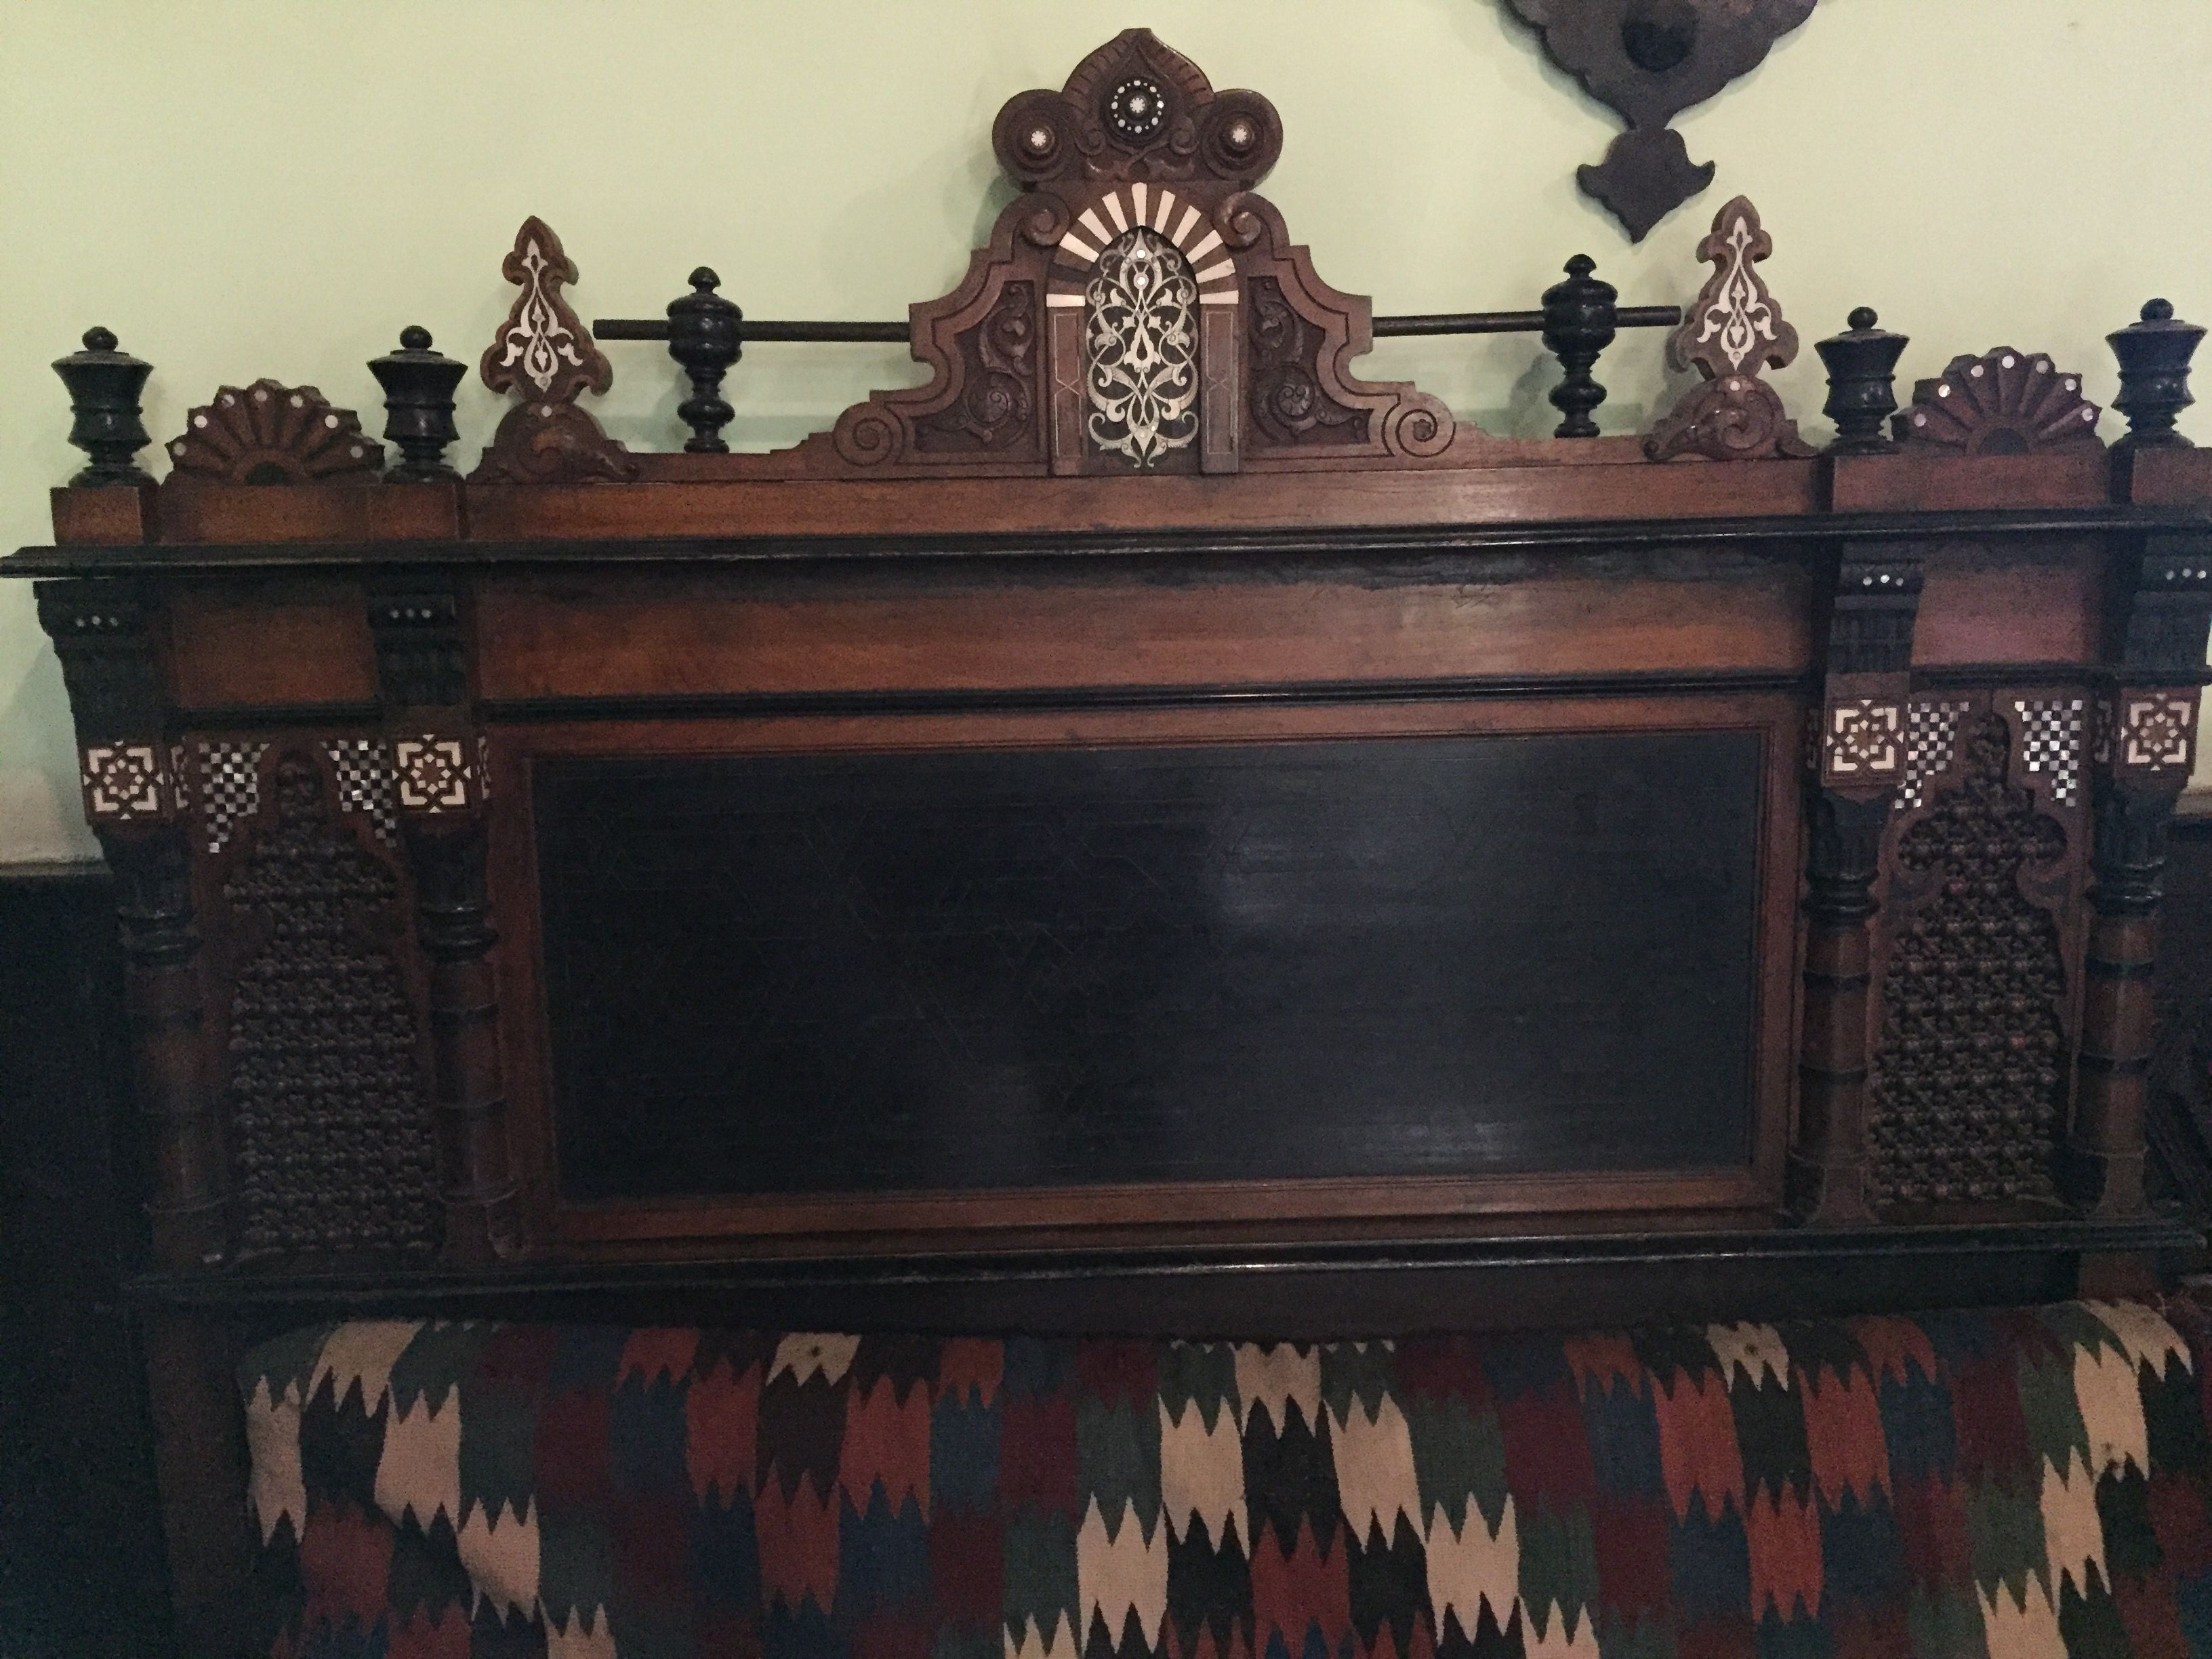 Hallway furniture gumtree  Islamic wooden back of sofa at The Manial Palace and Museum Egypt